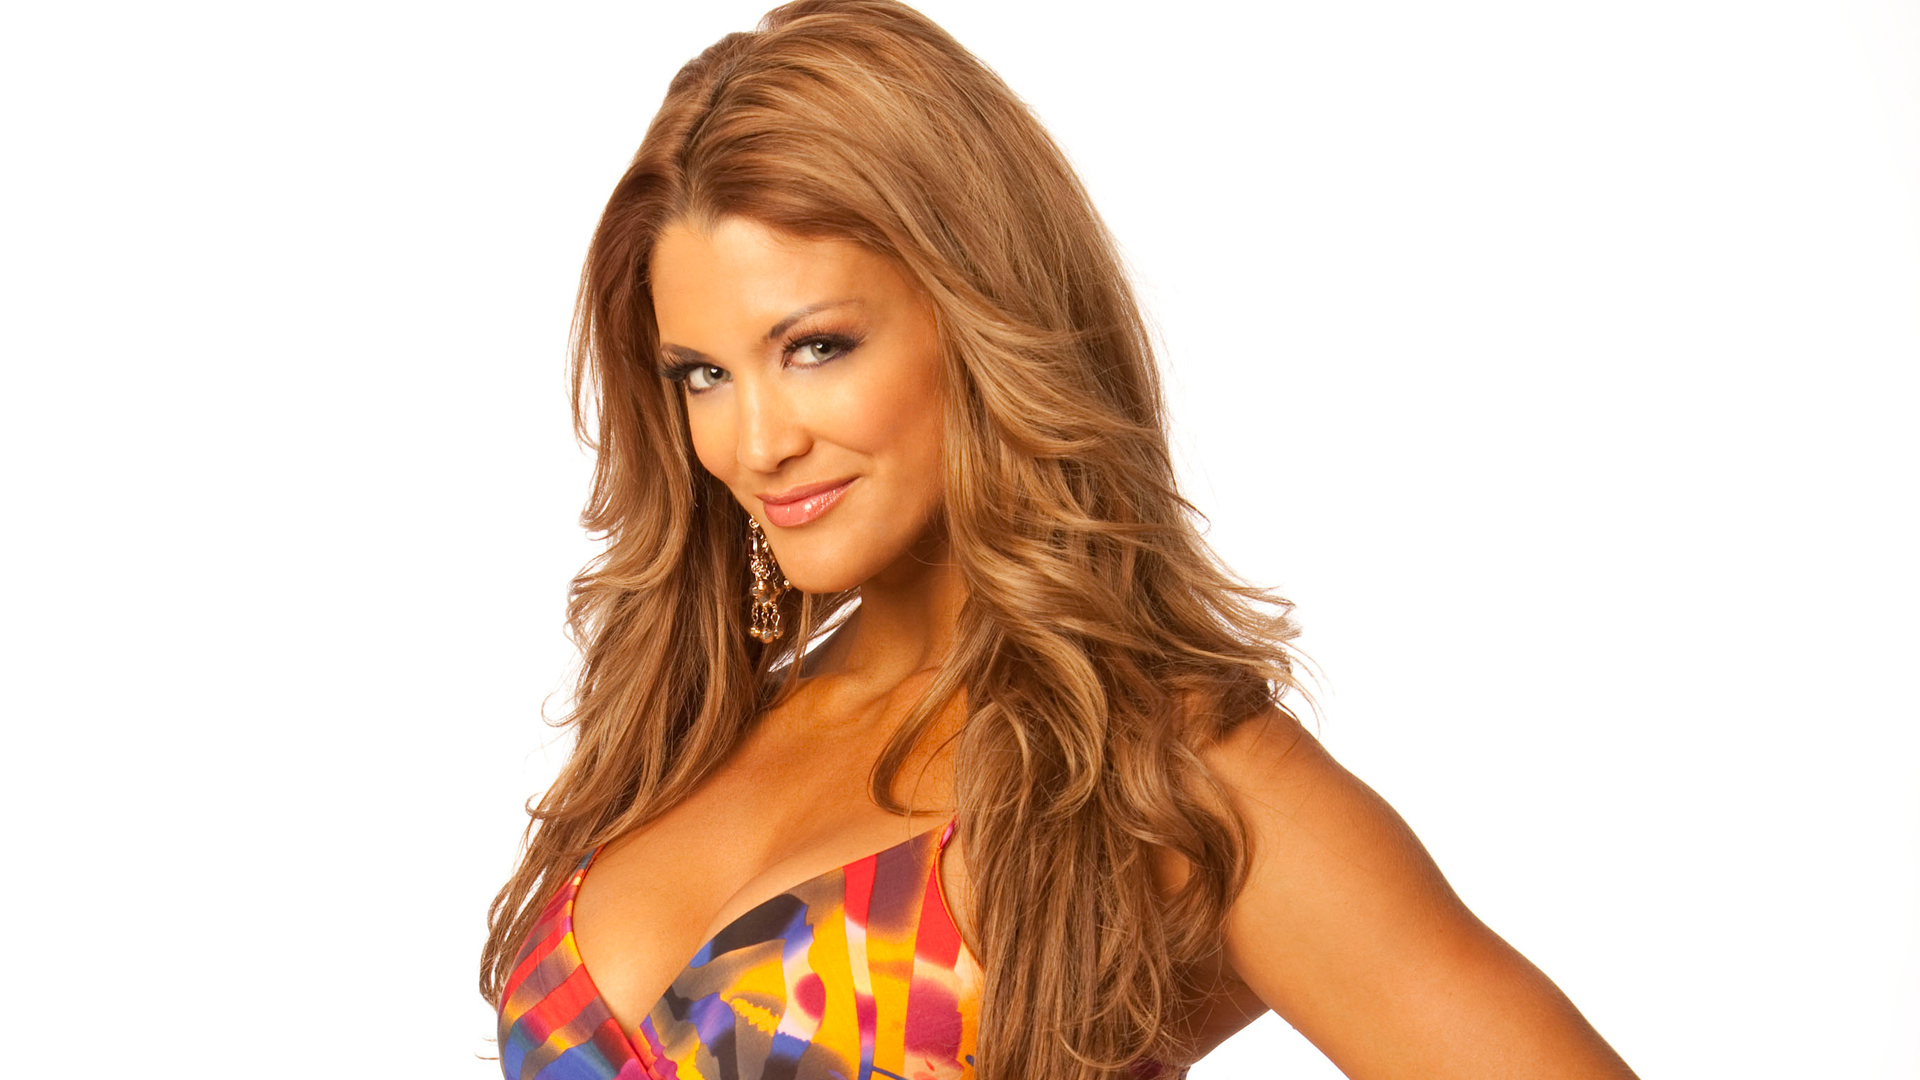 Eve torres wwe divas wallpaper 20701807 fanpop - Wwe divas wallpapers ...